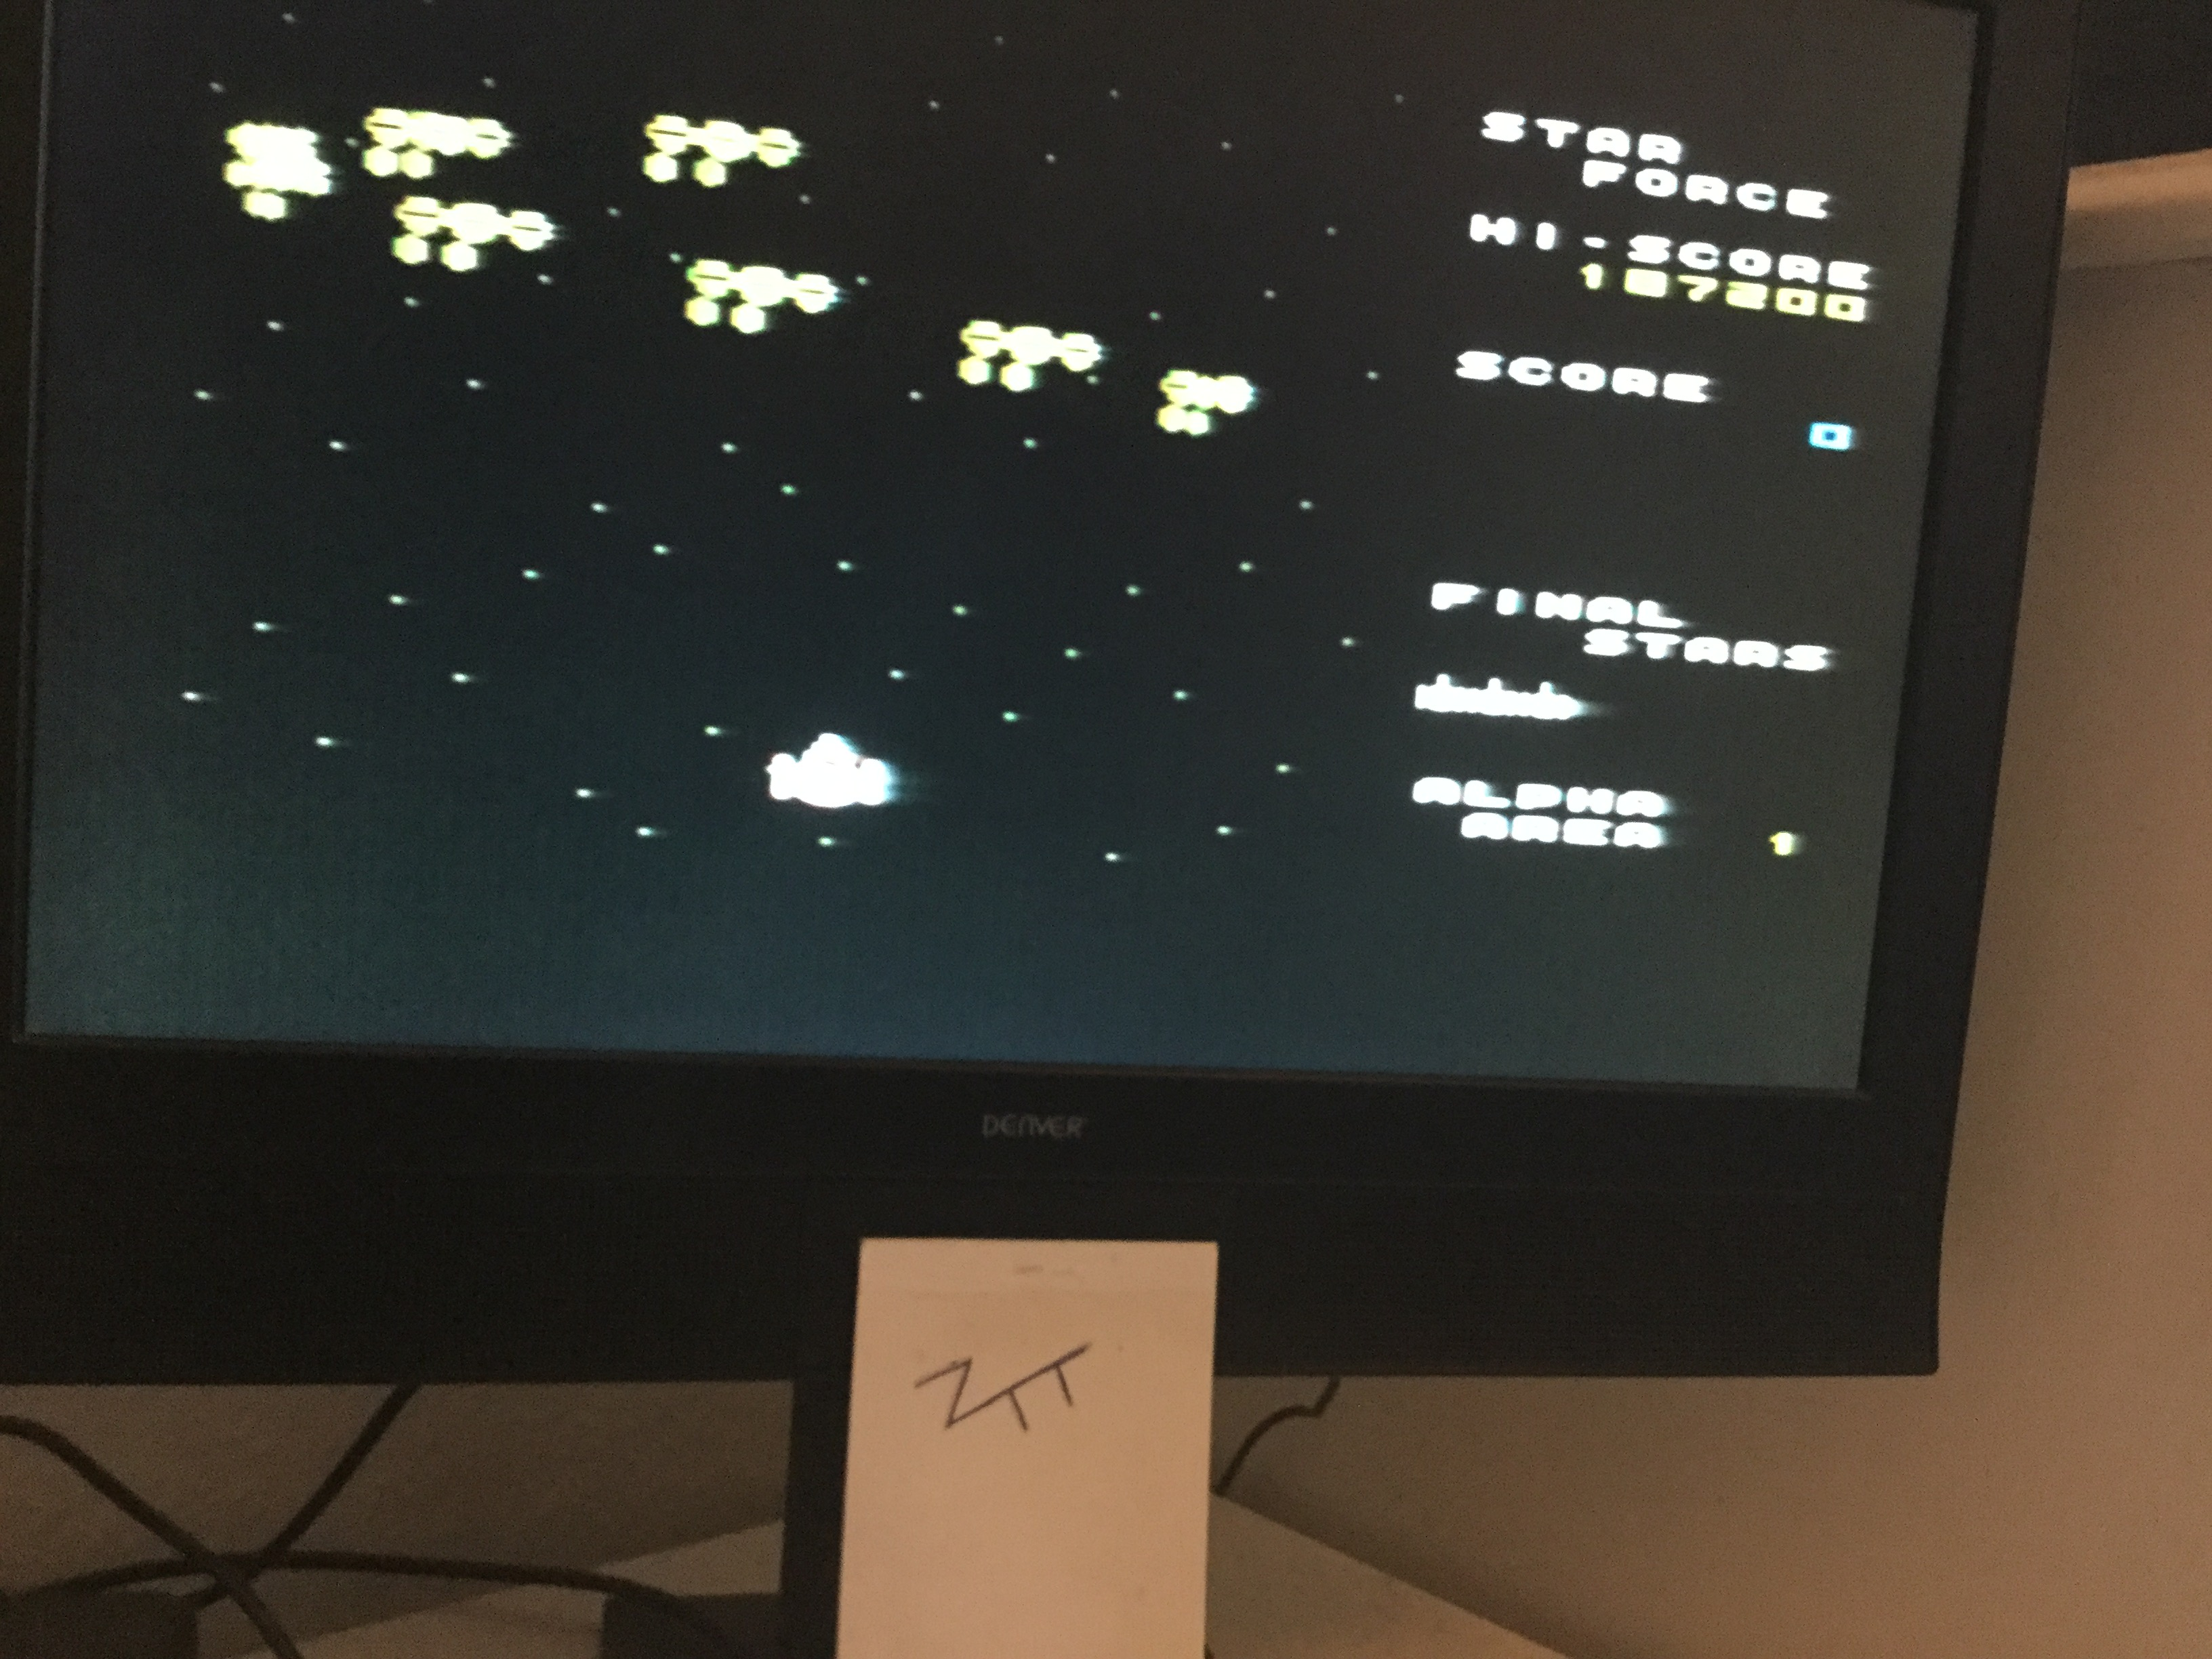 Frankie: Star Force (Colecovision) 187,200 points on 2016-12-30 07:39:22